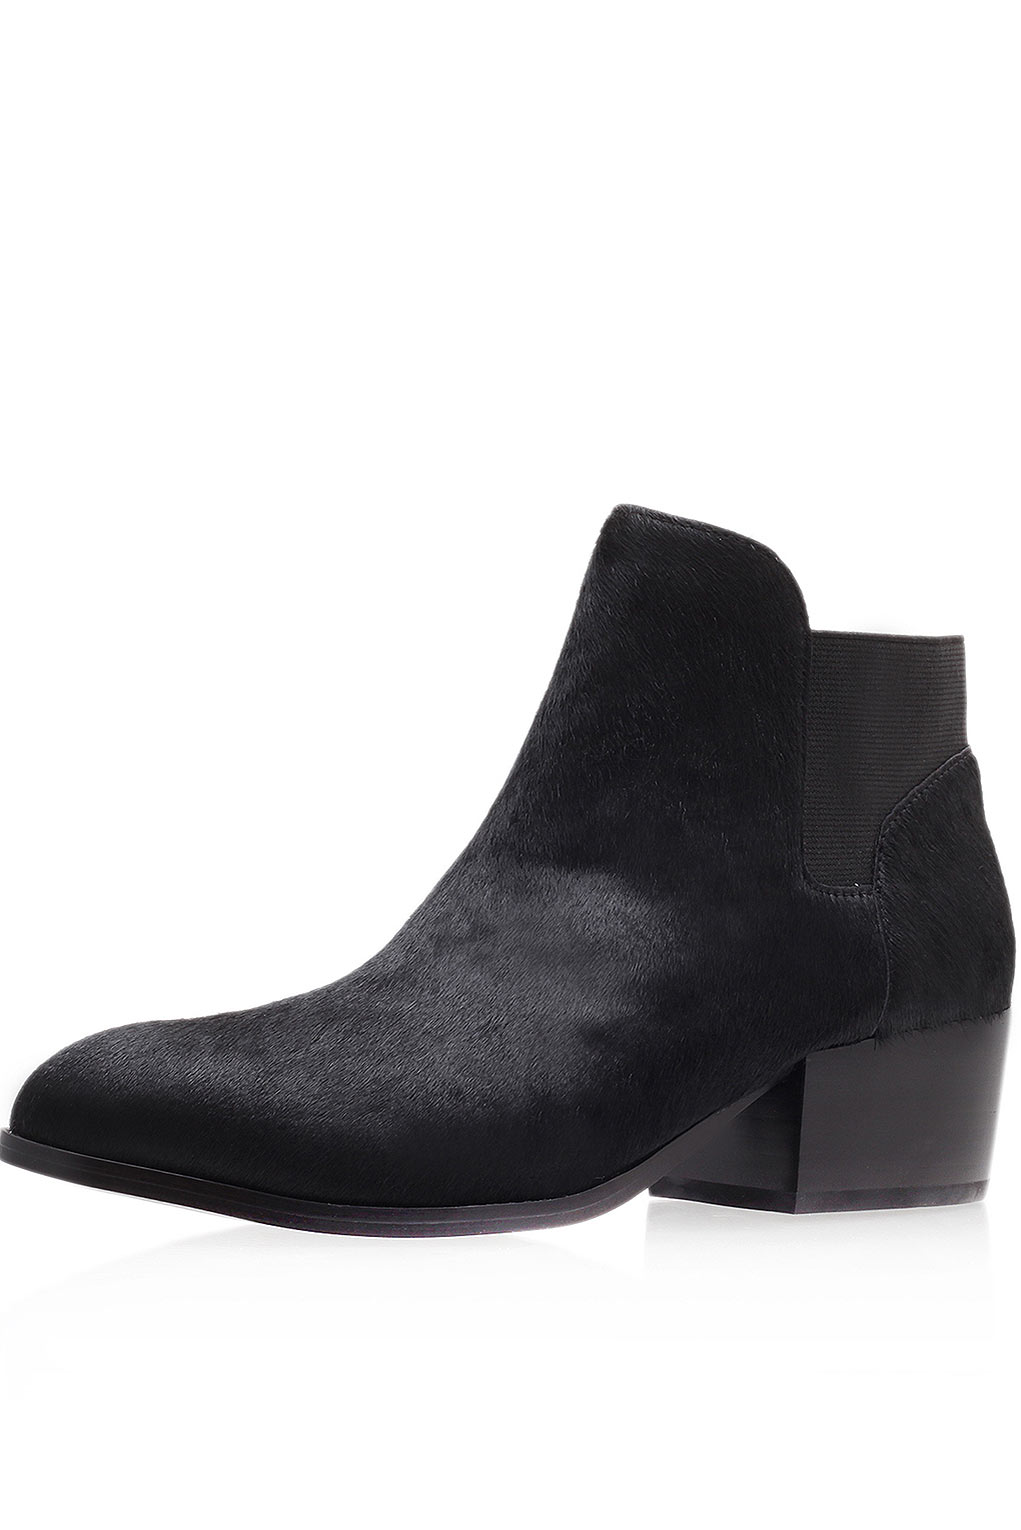 Black Ankle Boots Low Heel ppAw5UQt